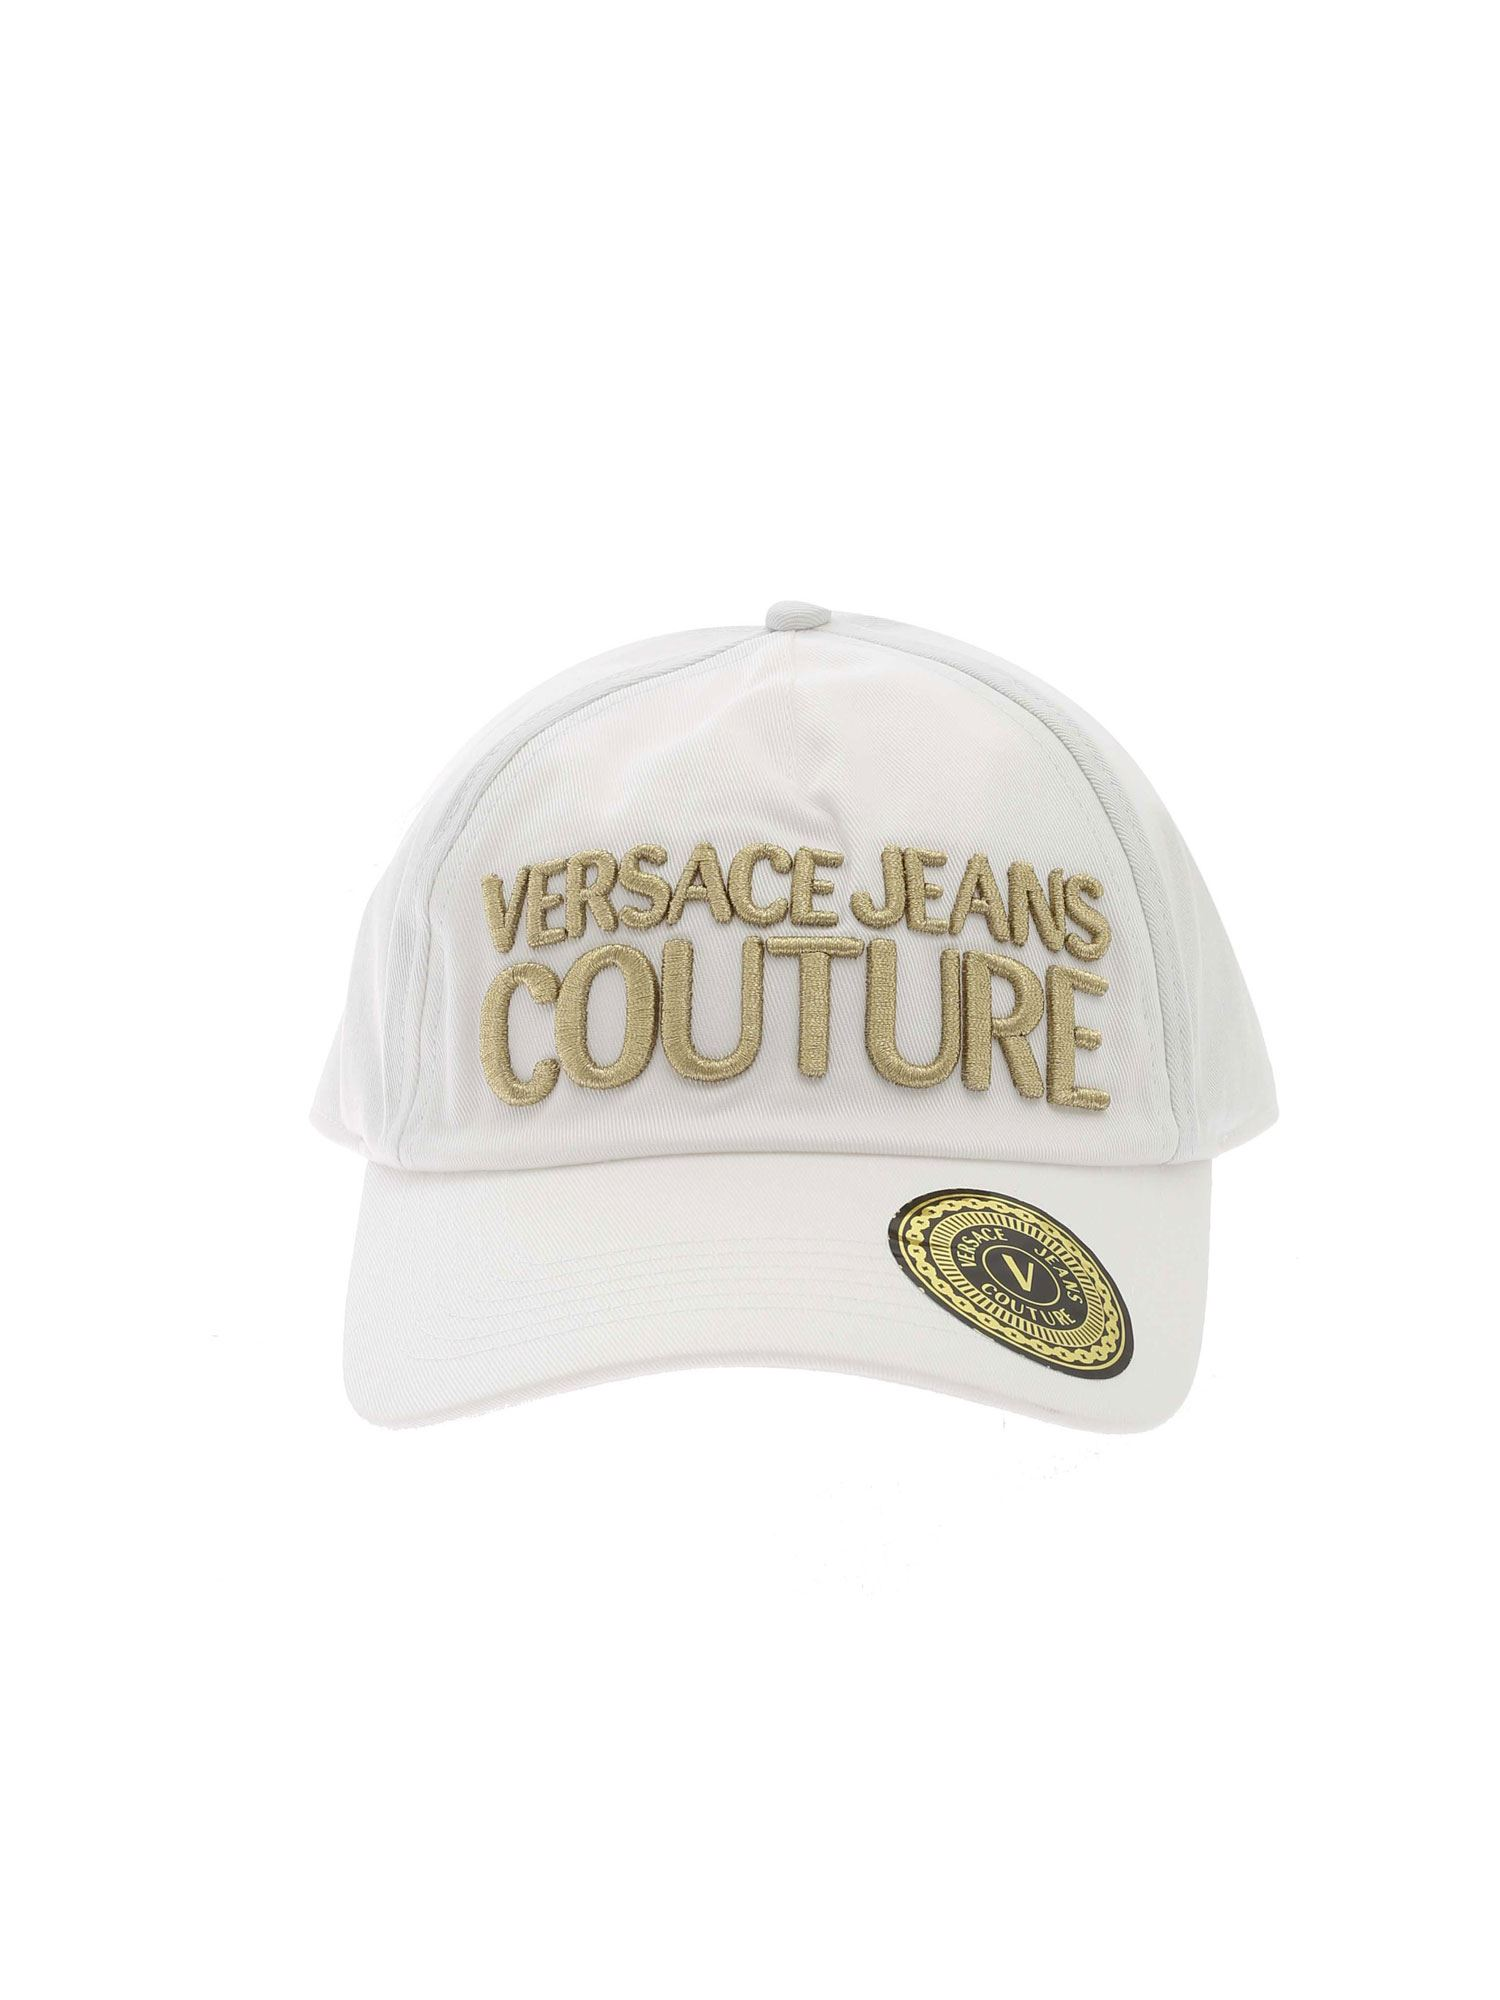 Versace Jeans Couture Caps BASEBALL CAP IN WHITE